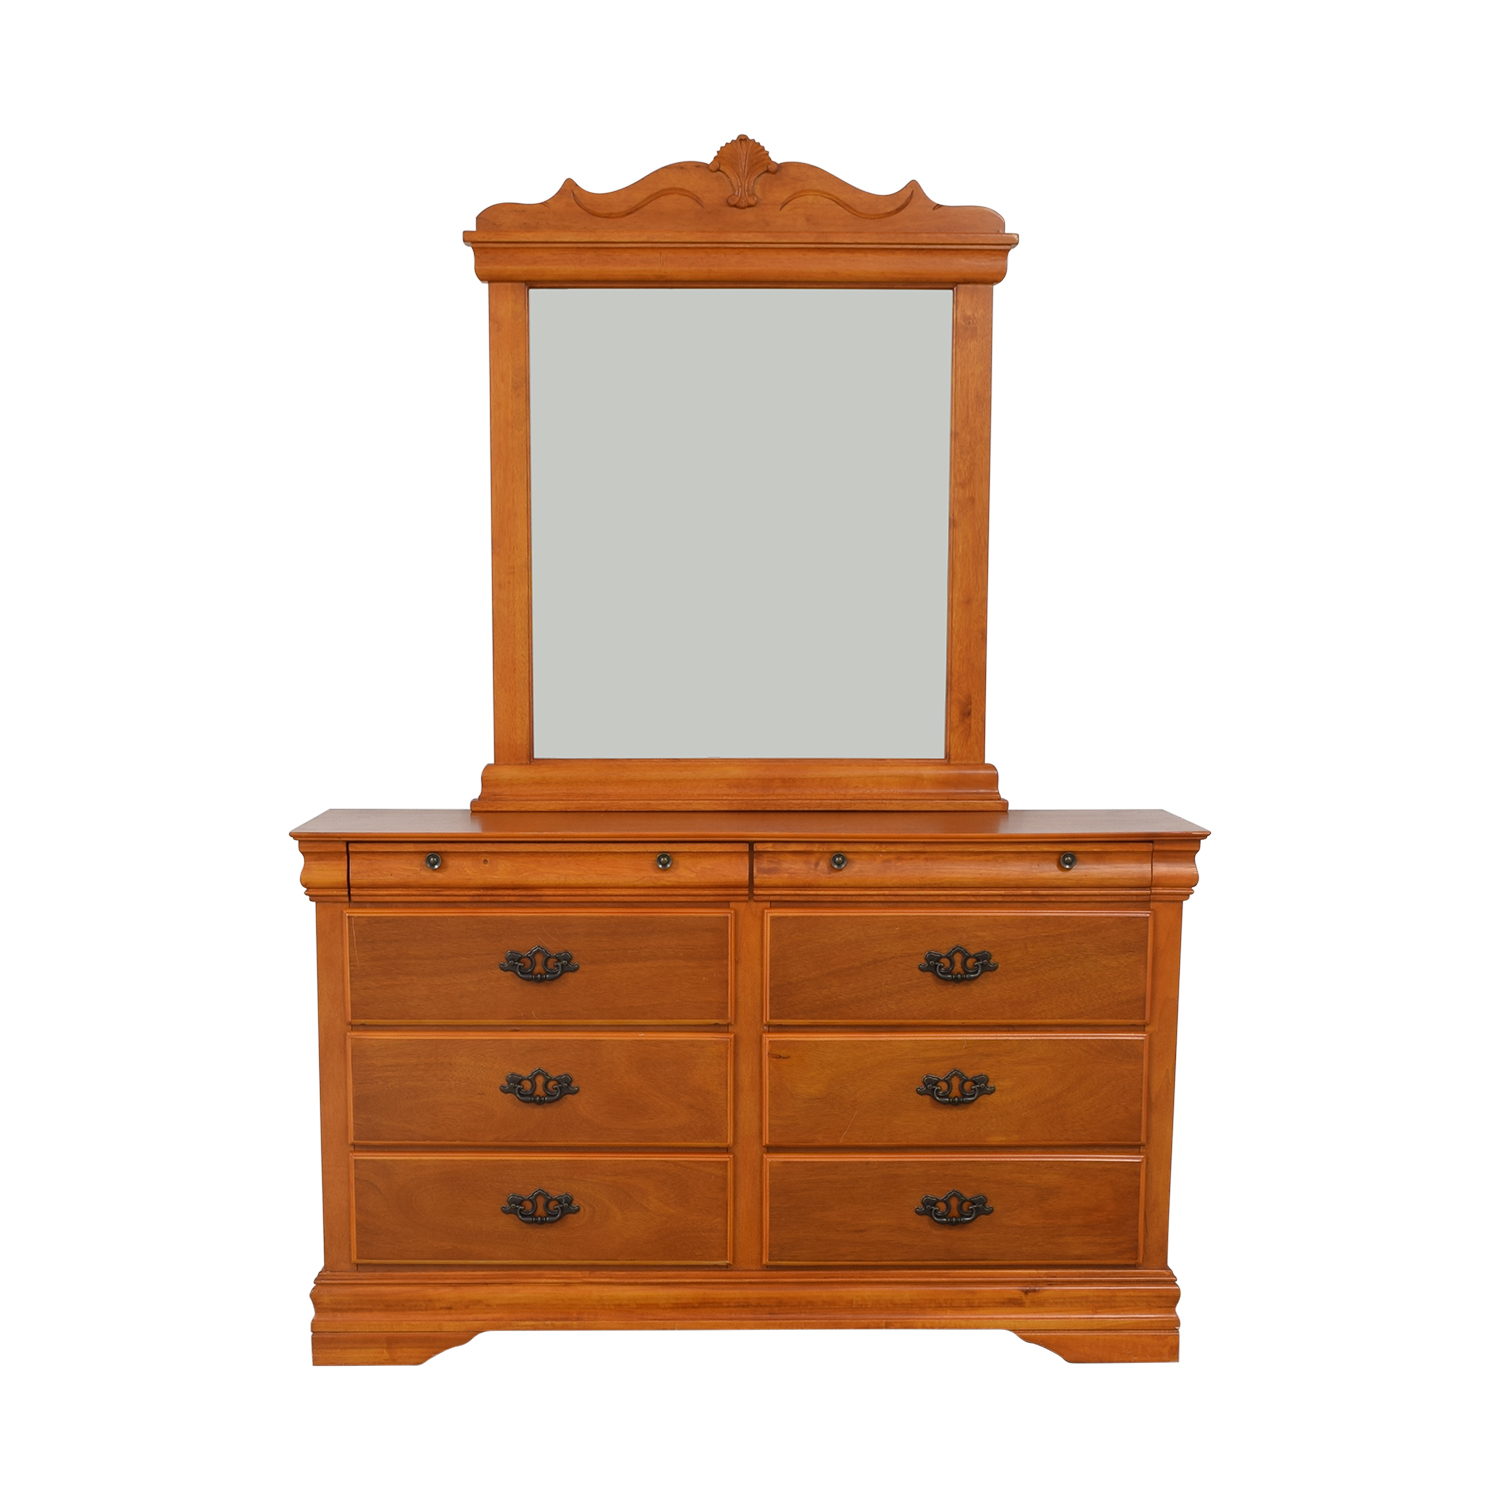 Gothic Cabinet Craft Gothic Cabinet Craft Dresser with Mirror on sale